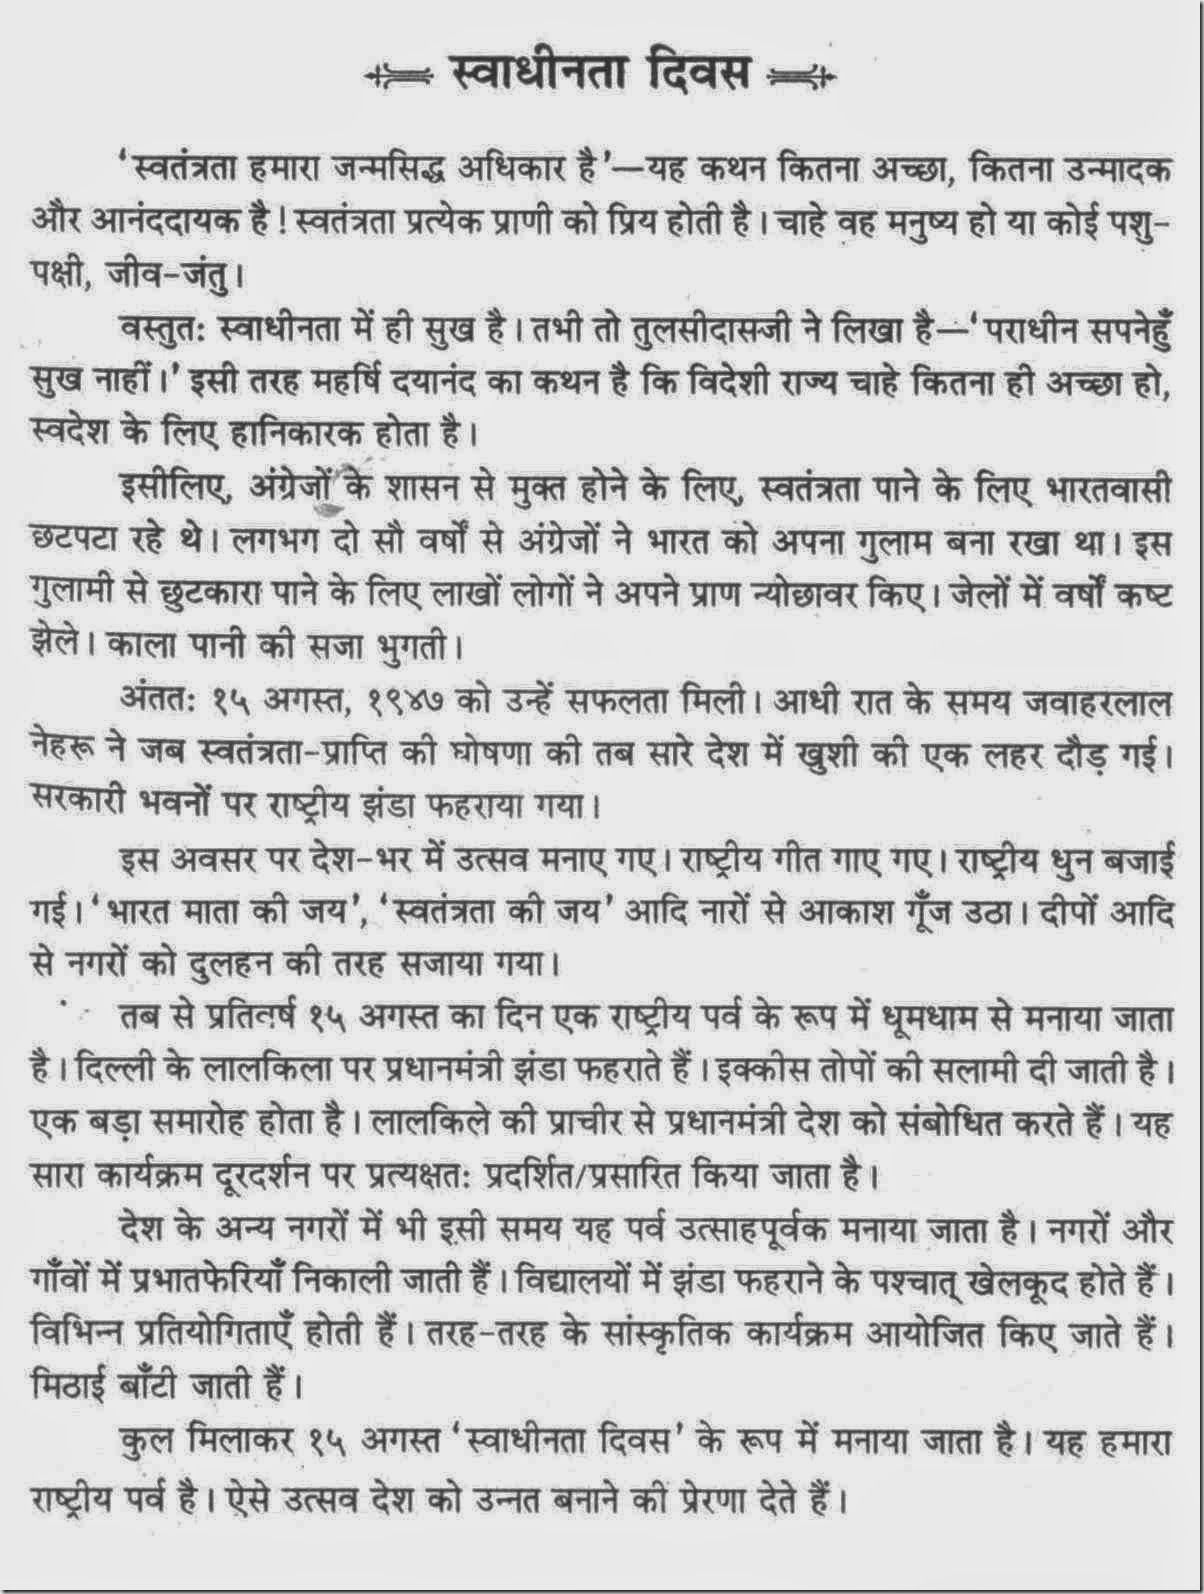 016 My Country Essay In Hindi Phenomenal 10 Lines Is Great Full